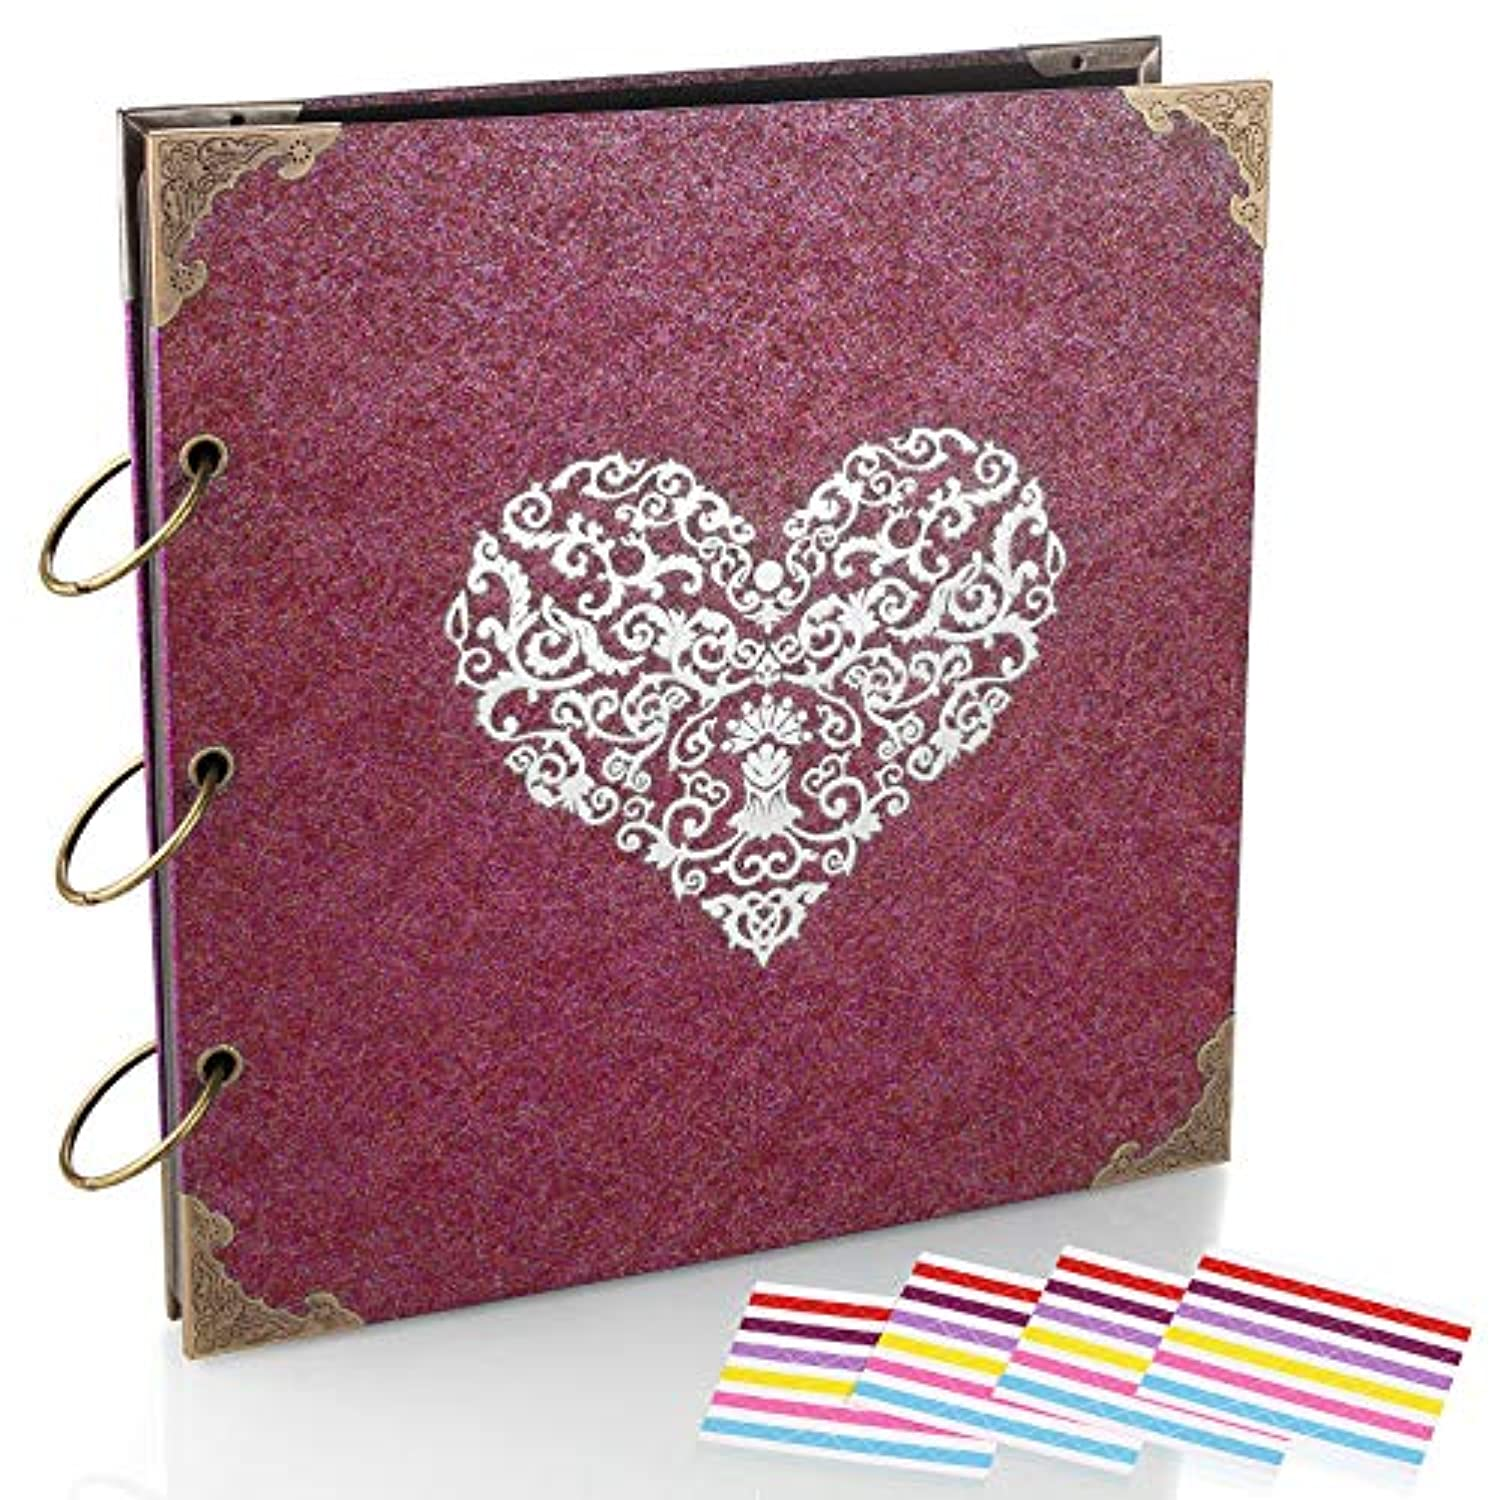 ADVcer Photo Album and DIY Scrapbook, 10x10 inch 50 Pages Double Sided, Vintage Hardcover Three-Ring Binder Picture Booth Albums with 6 Colors 408pcs Self Adhesive Photos Corners for Memory Keep (Red)